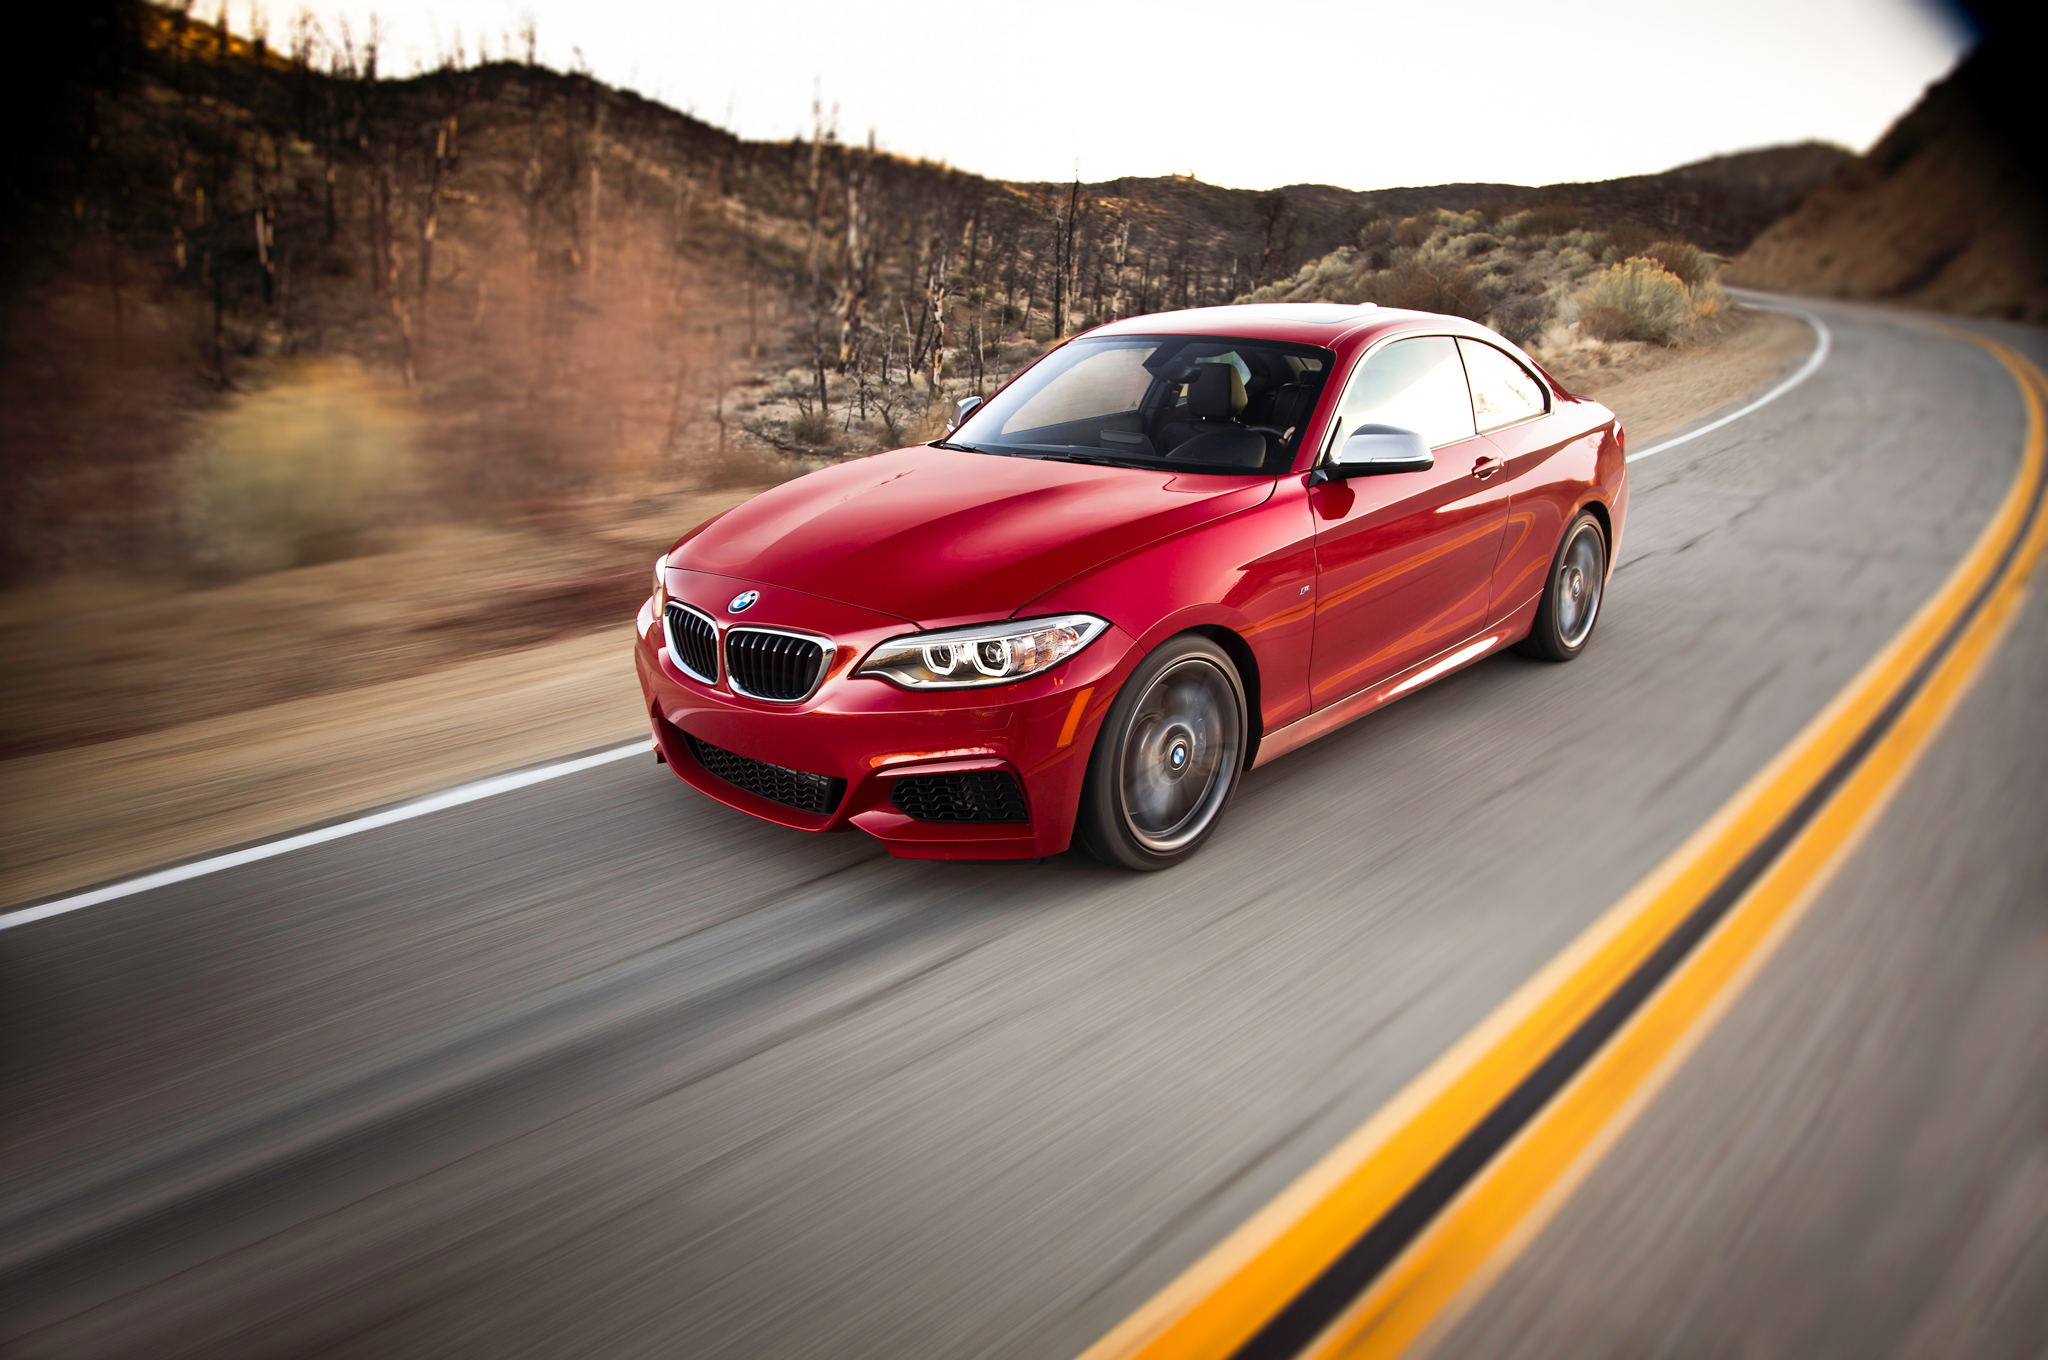 2014 Bmw M235i Performance (Photo 7 of 8)